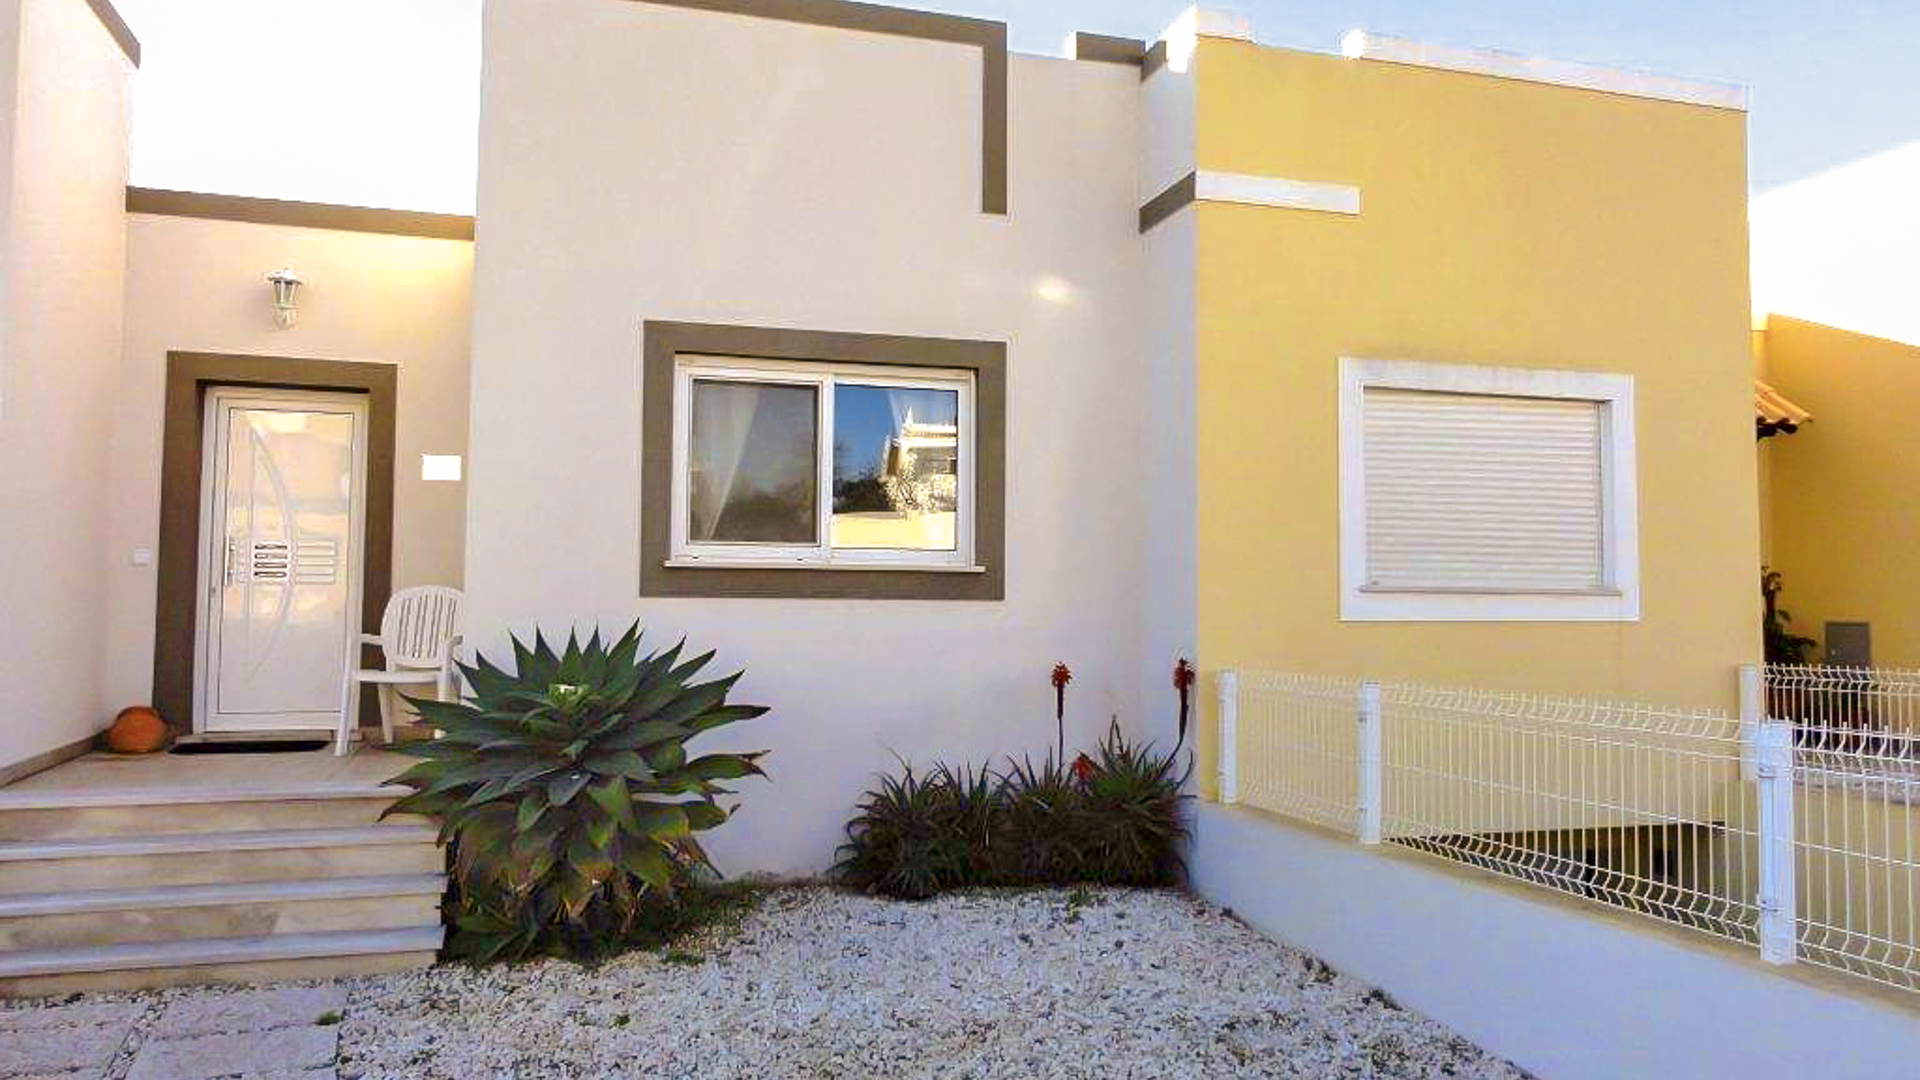 4 Bedroom Modern Linked Villa in Algoz | VM187 This modern 4 bedroom villa has a swimming pool and a roof terrace. It is located in Algoz, close to amenities and golf, and only a short drive to several beaches.